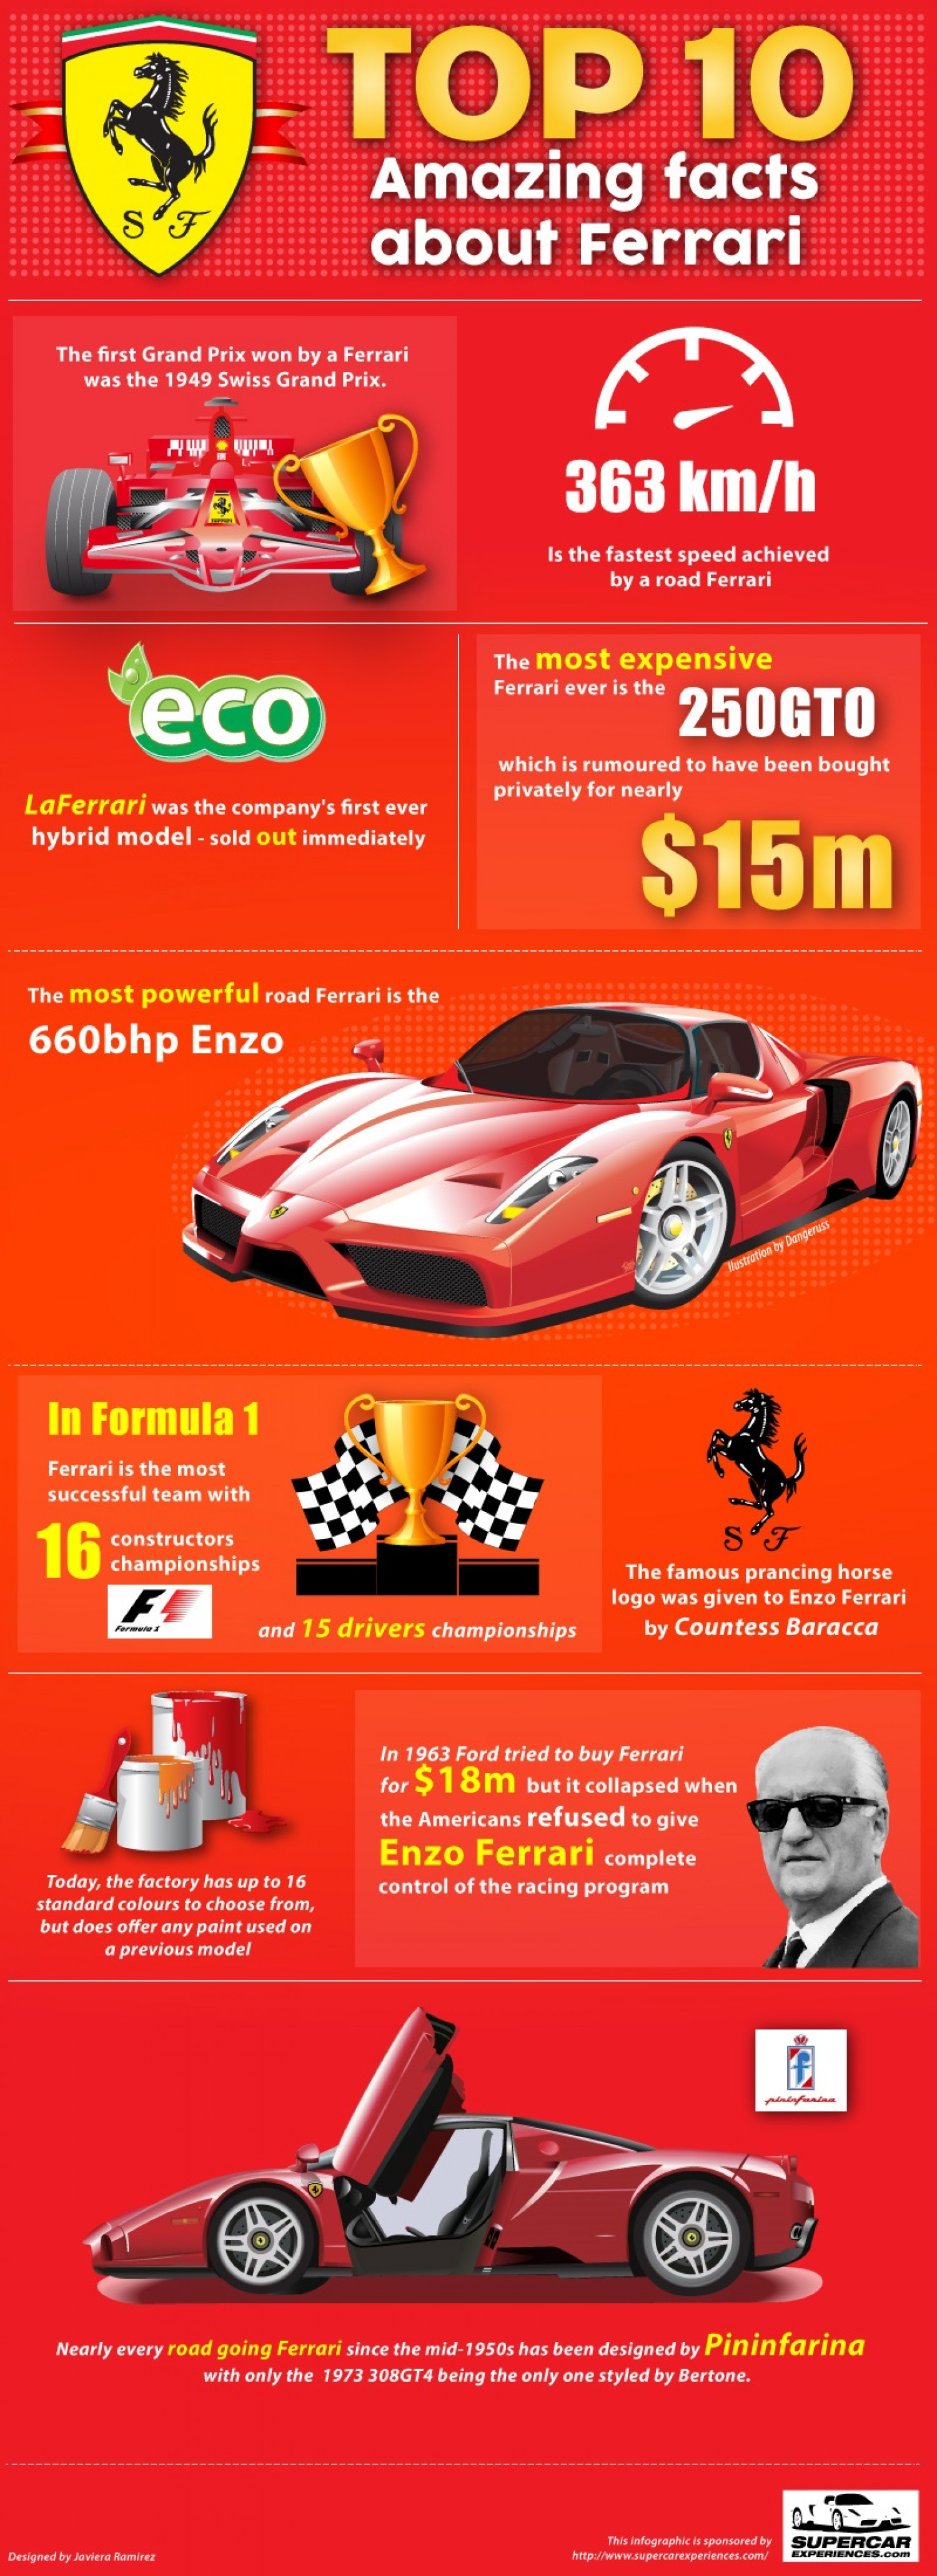 Ten Amazing Facts About Ferrari | Visual.ly